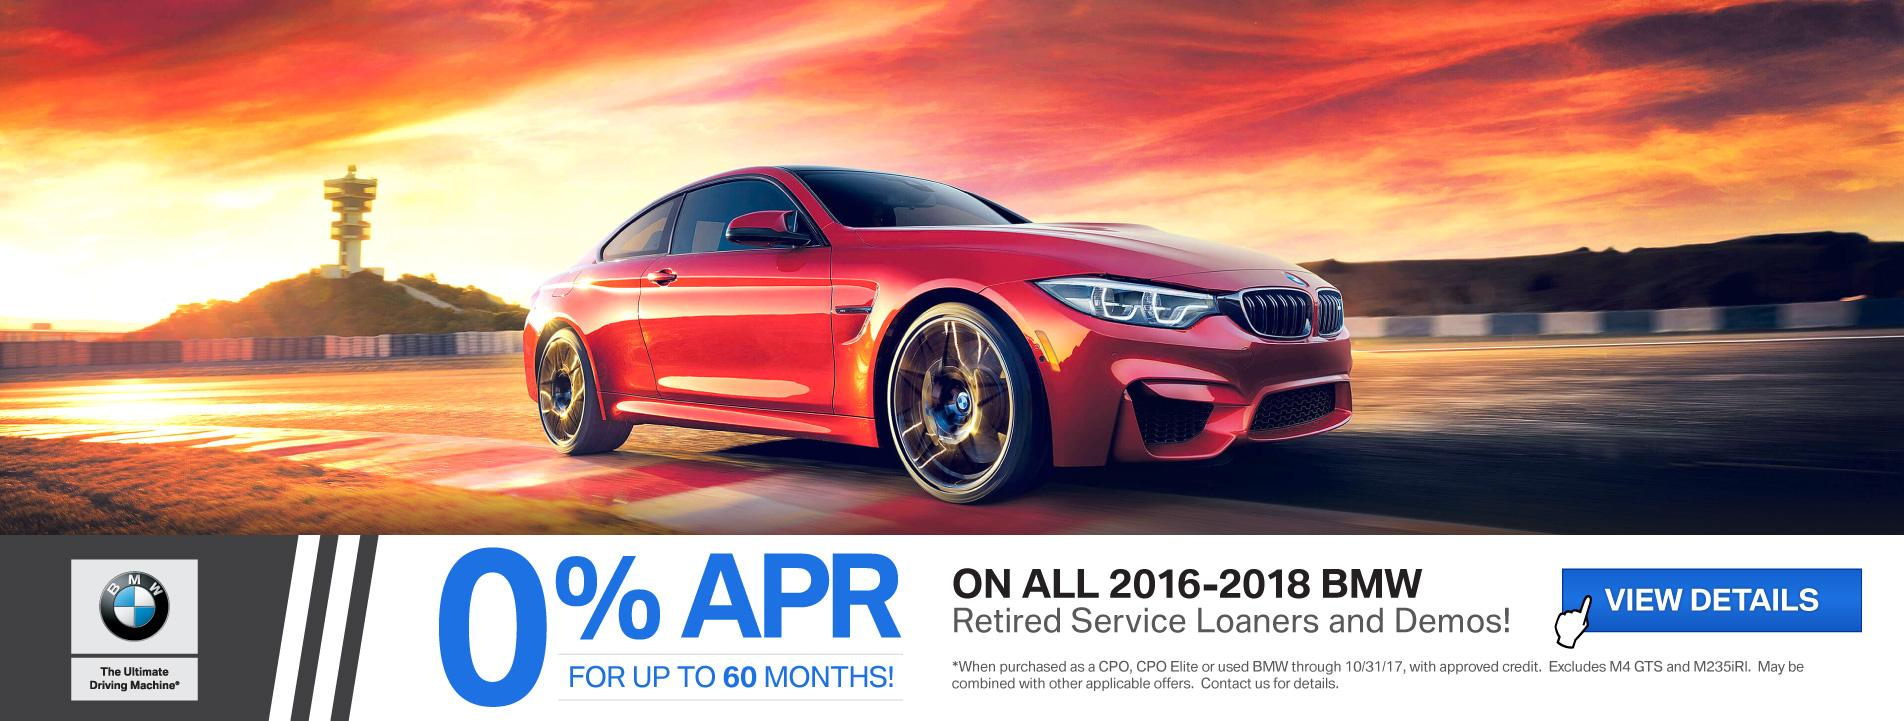 BMW Financing Offer on Retired Service Loaners and Demos